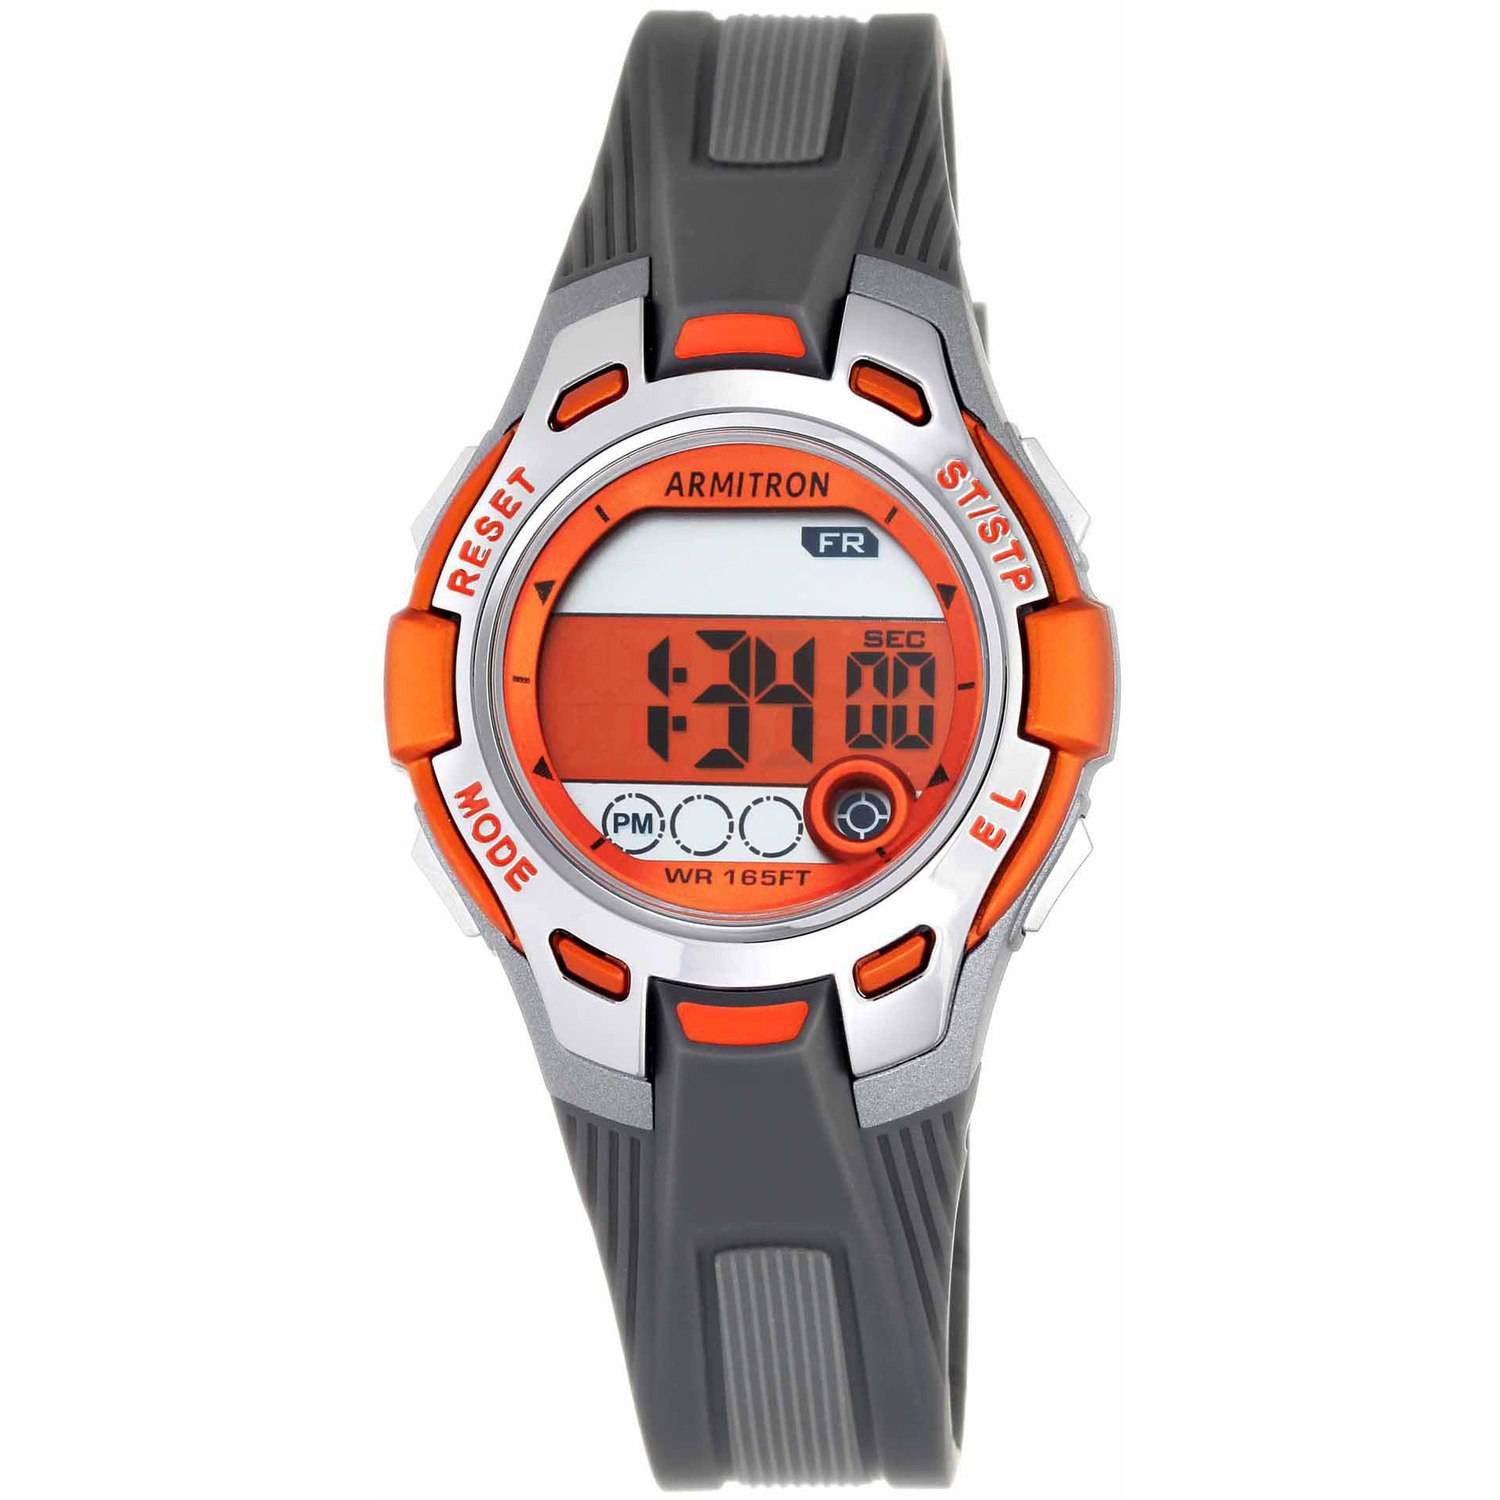 Armitron Unisex Sport Round Watch, Orange